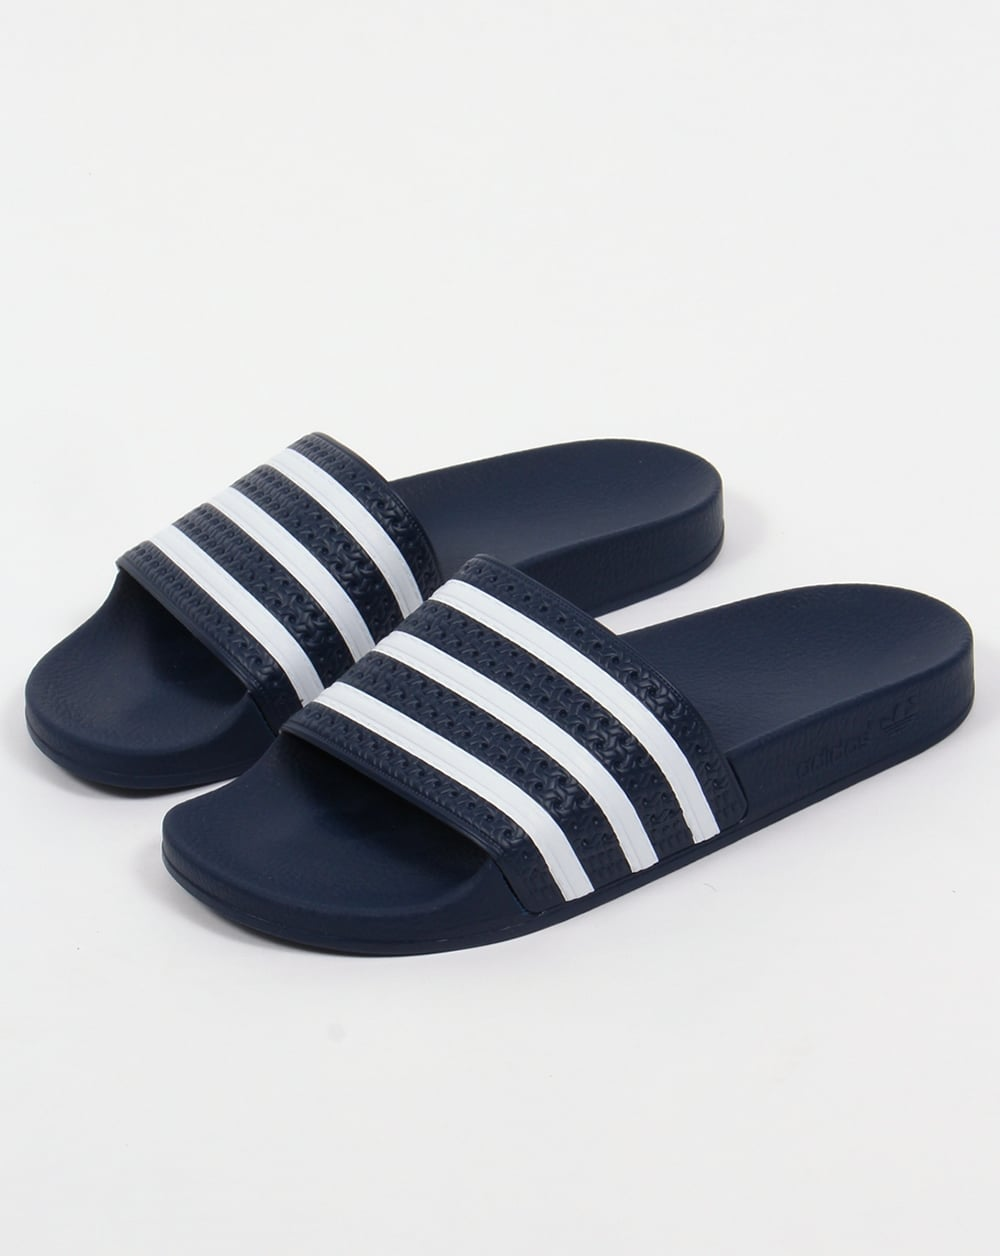 1306e1643983 Adidas Adilette Sliders Navy White